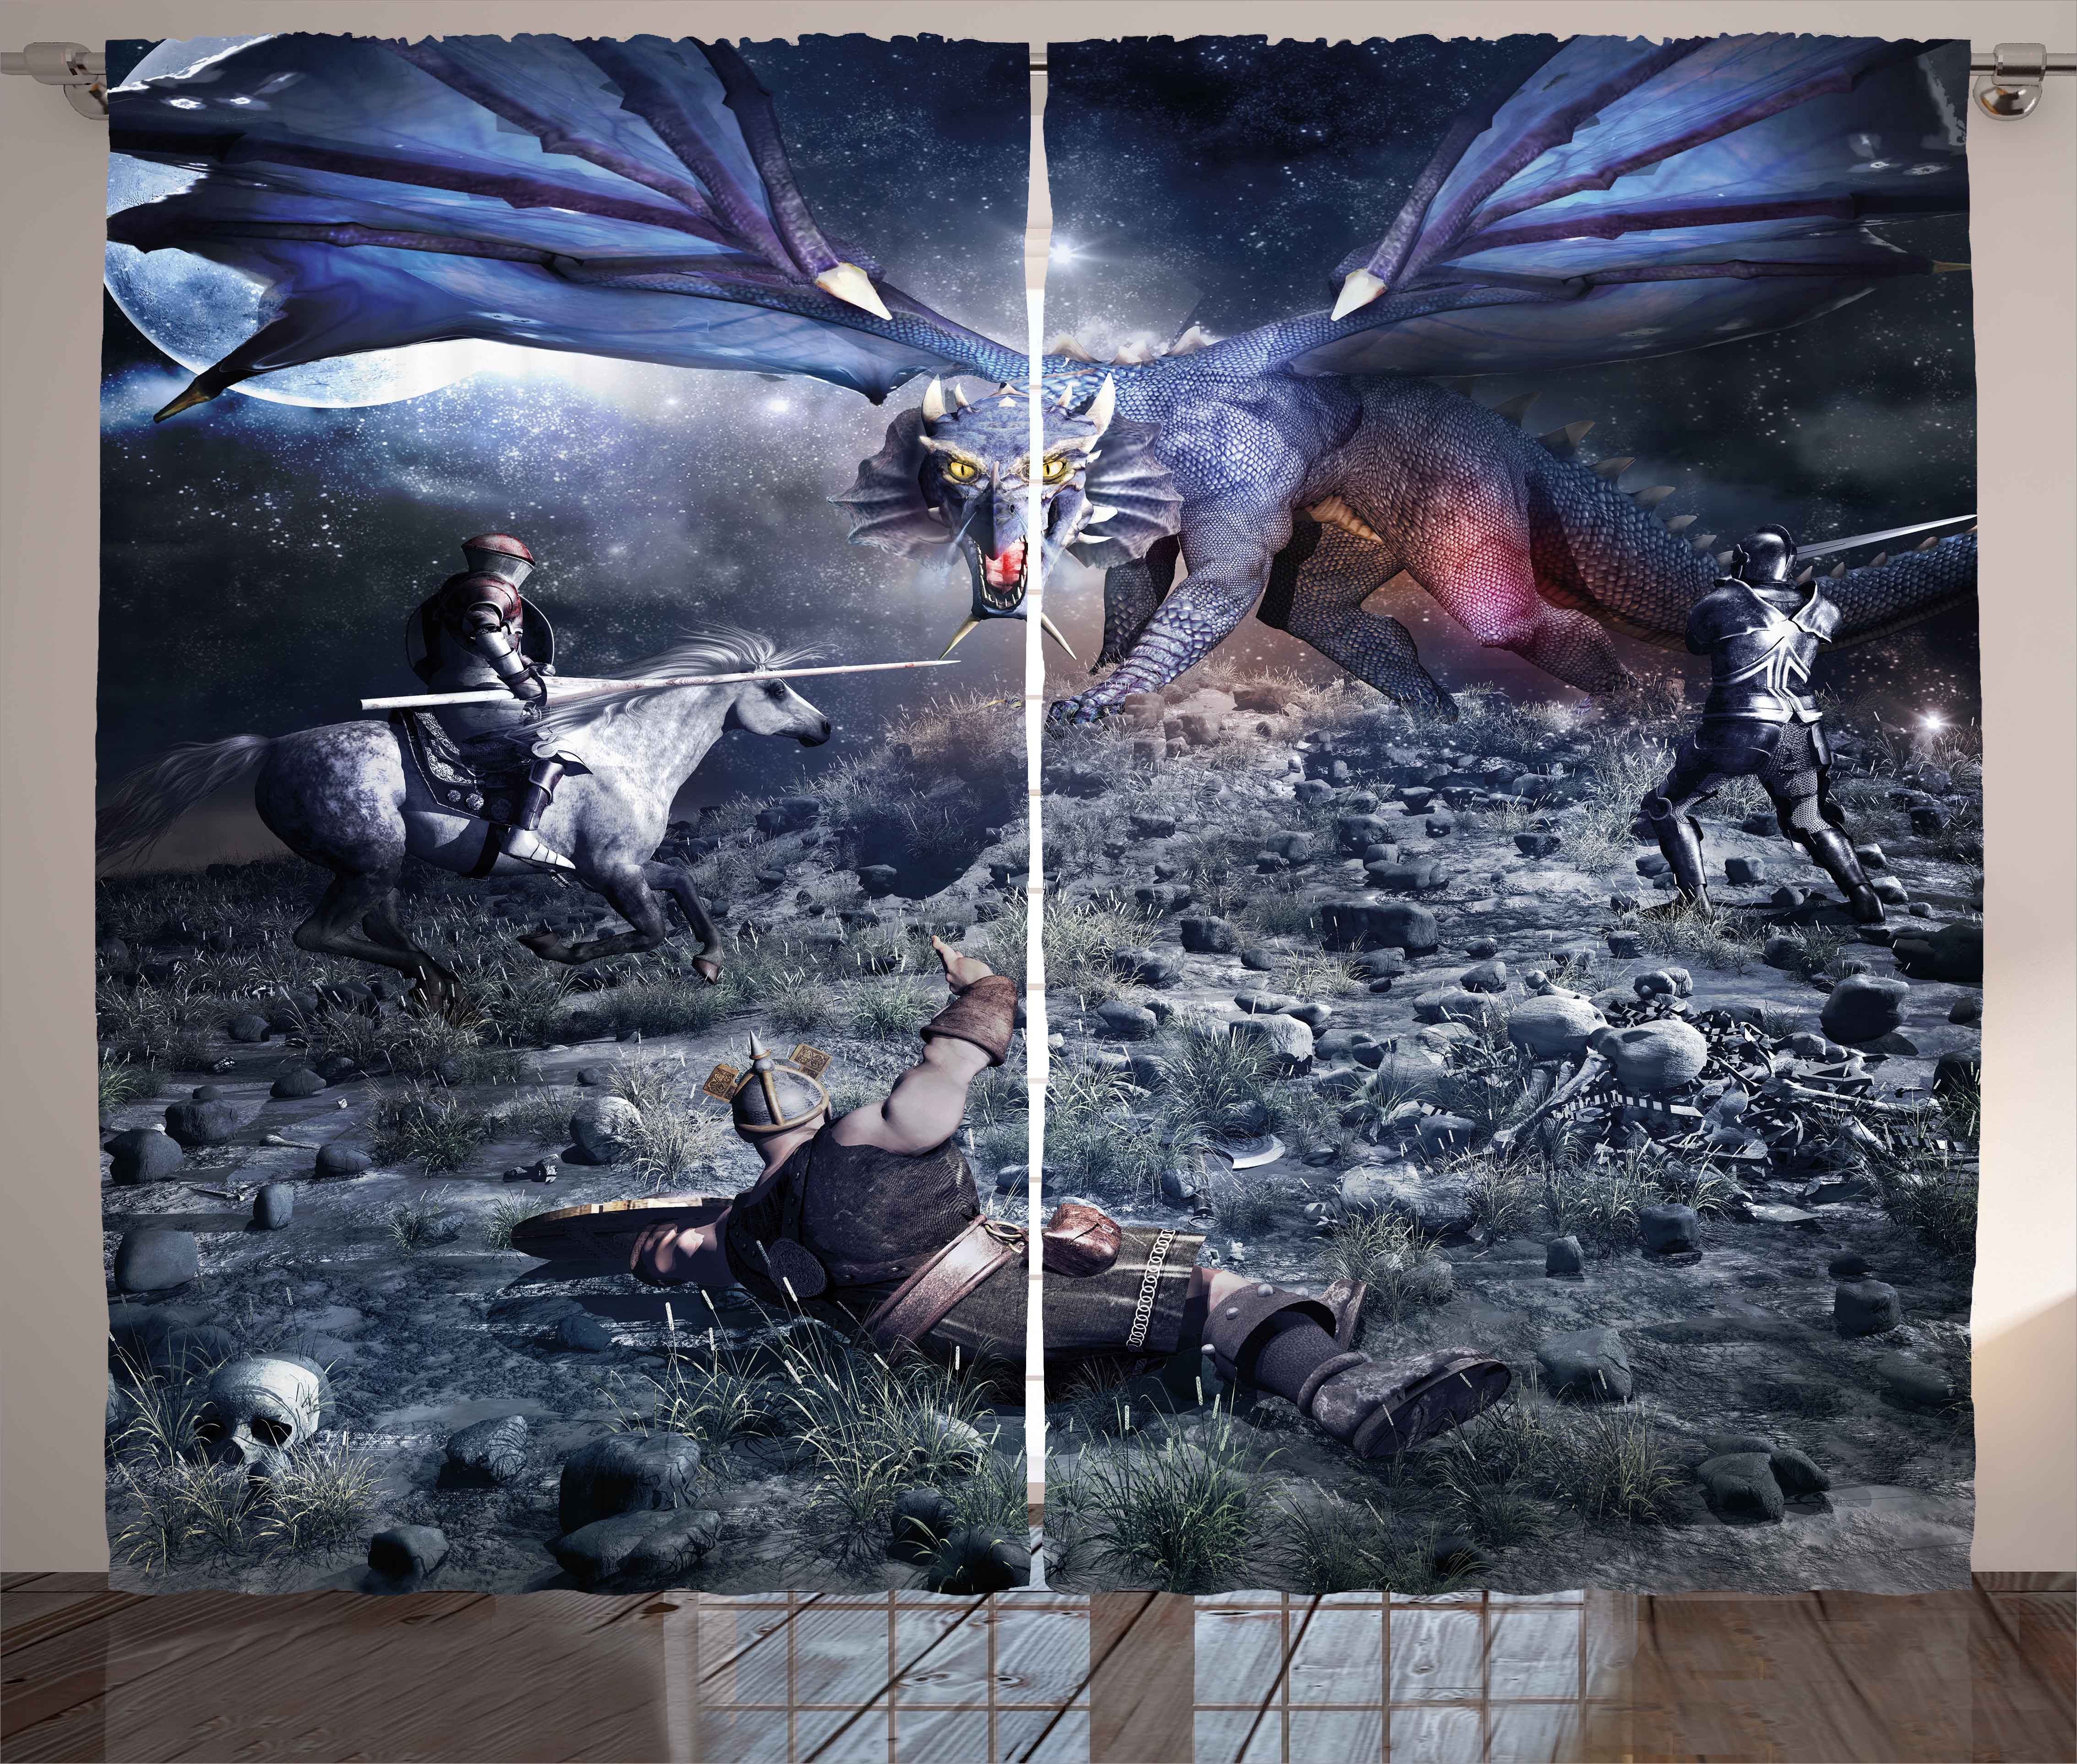 Fantasy Curtains 2 Panels Set, Dragon Fighting With